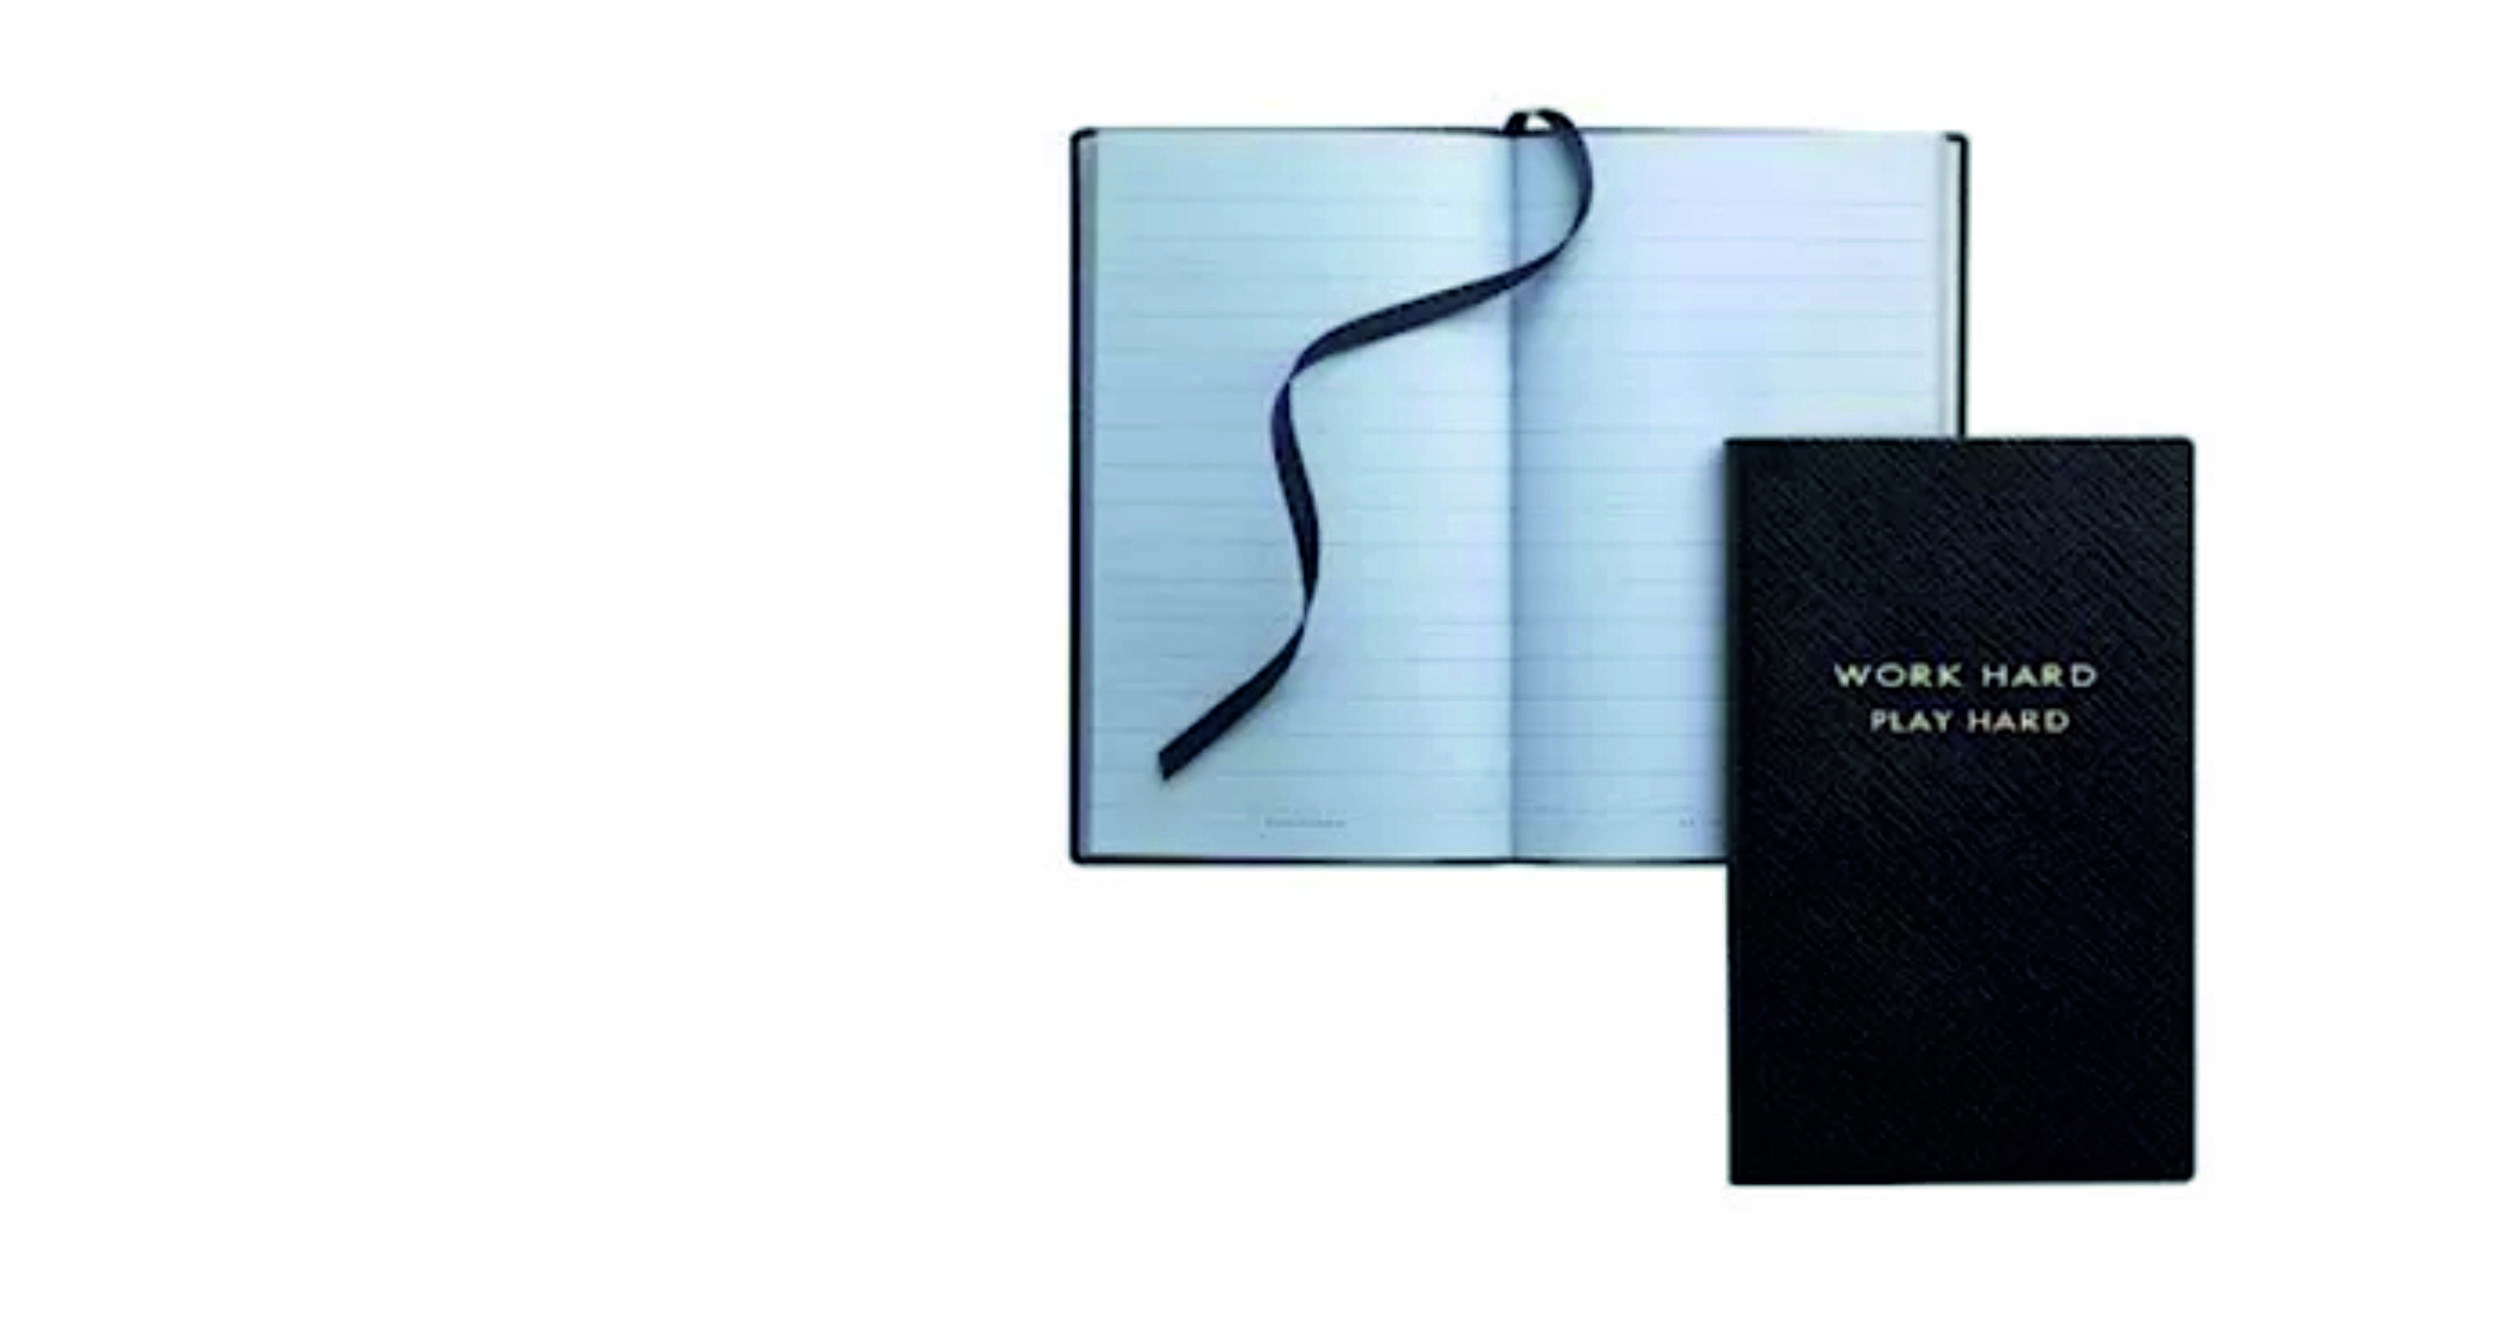 3. PANAMA TEXTURED-LEATHER NOTEBOOK BY SMYTHSON